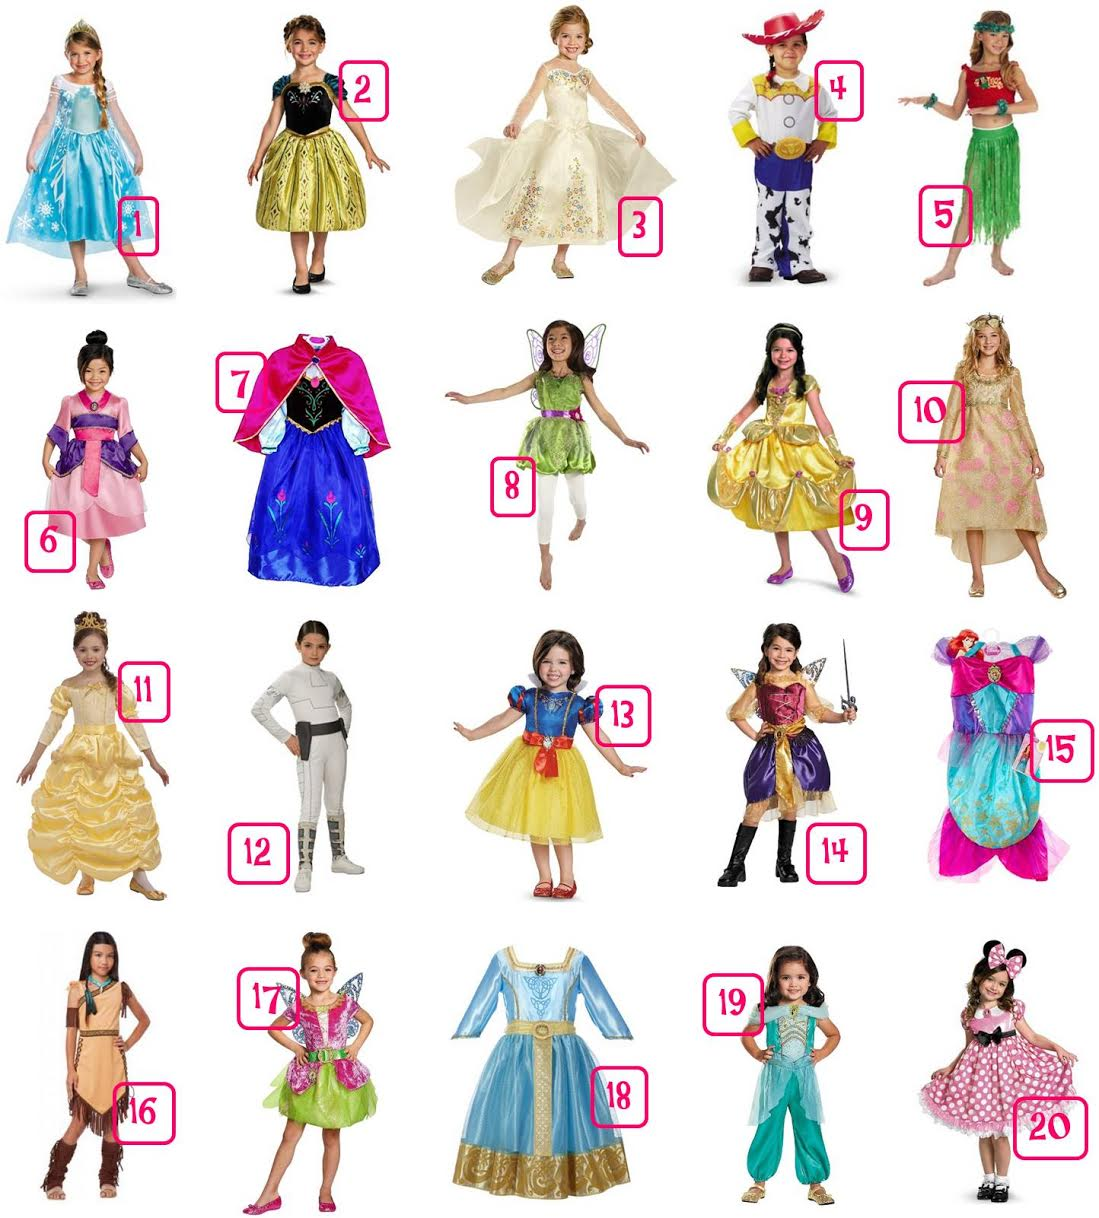 20 Disney Girls' Halloween Costumes Under $30 - Most with FREE Shipping!